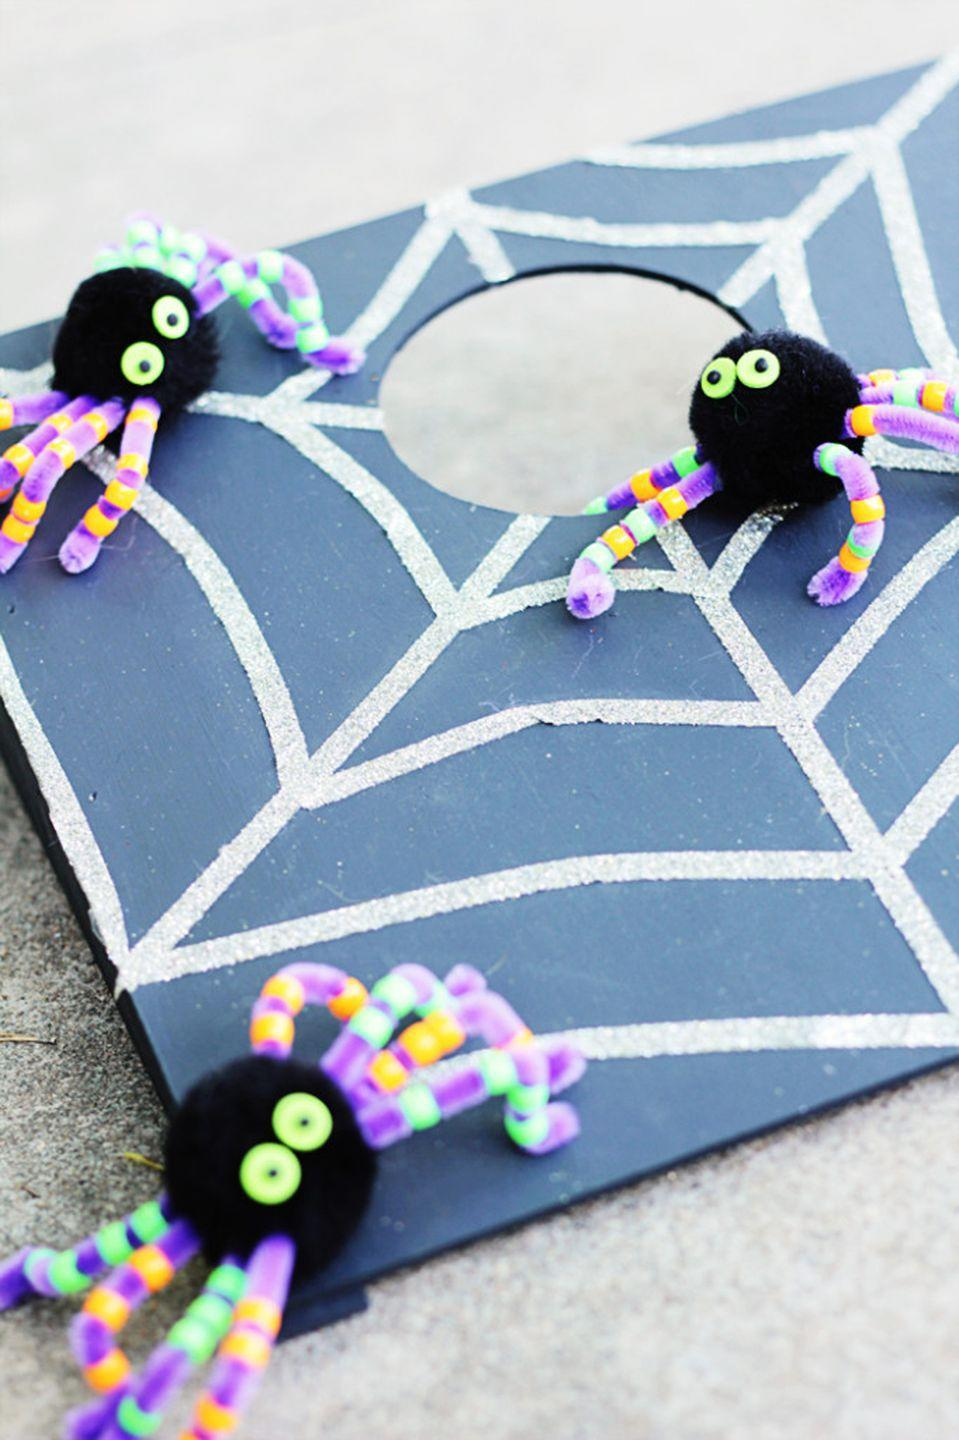 "<p>Give cornhole a Halloween update by painting a web onto the board and subbing in toy spiders in place of the bean bags.</p><p><strong>Get the tutorial at <a href=""http://blog.consumercrafts.com/kids-stuff/cornhole-halloween-game/"" rel=""nofollow noopener"" target=""_blank"" data-ylk=""slk:Crafts Unleashed"" class=""link rapid-noclick-resp"">Crafts Unleashed</a>.</strong></p><p><a class=""link rapid-noclick-resp"" href=""https://www.slickwoodys.com/collections/country-living-cornhole"" rel=""nofollow noopener"" target=""_blank"" data-ylk=""slk:SHOP CORNHOLE GAMES"">SHOP CORNHOLE GAMES</a><br></p>"